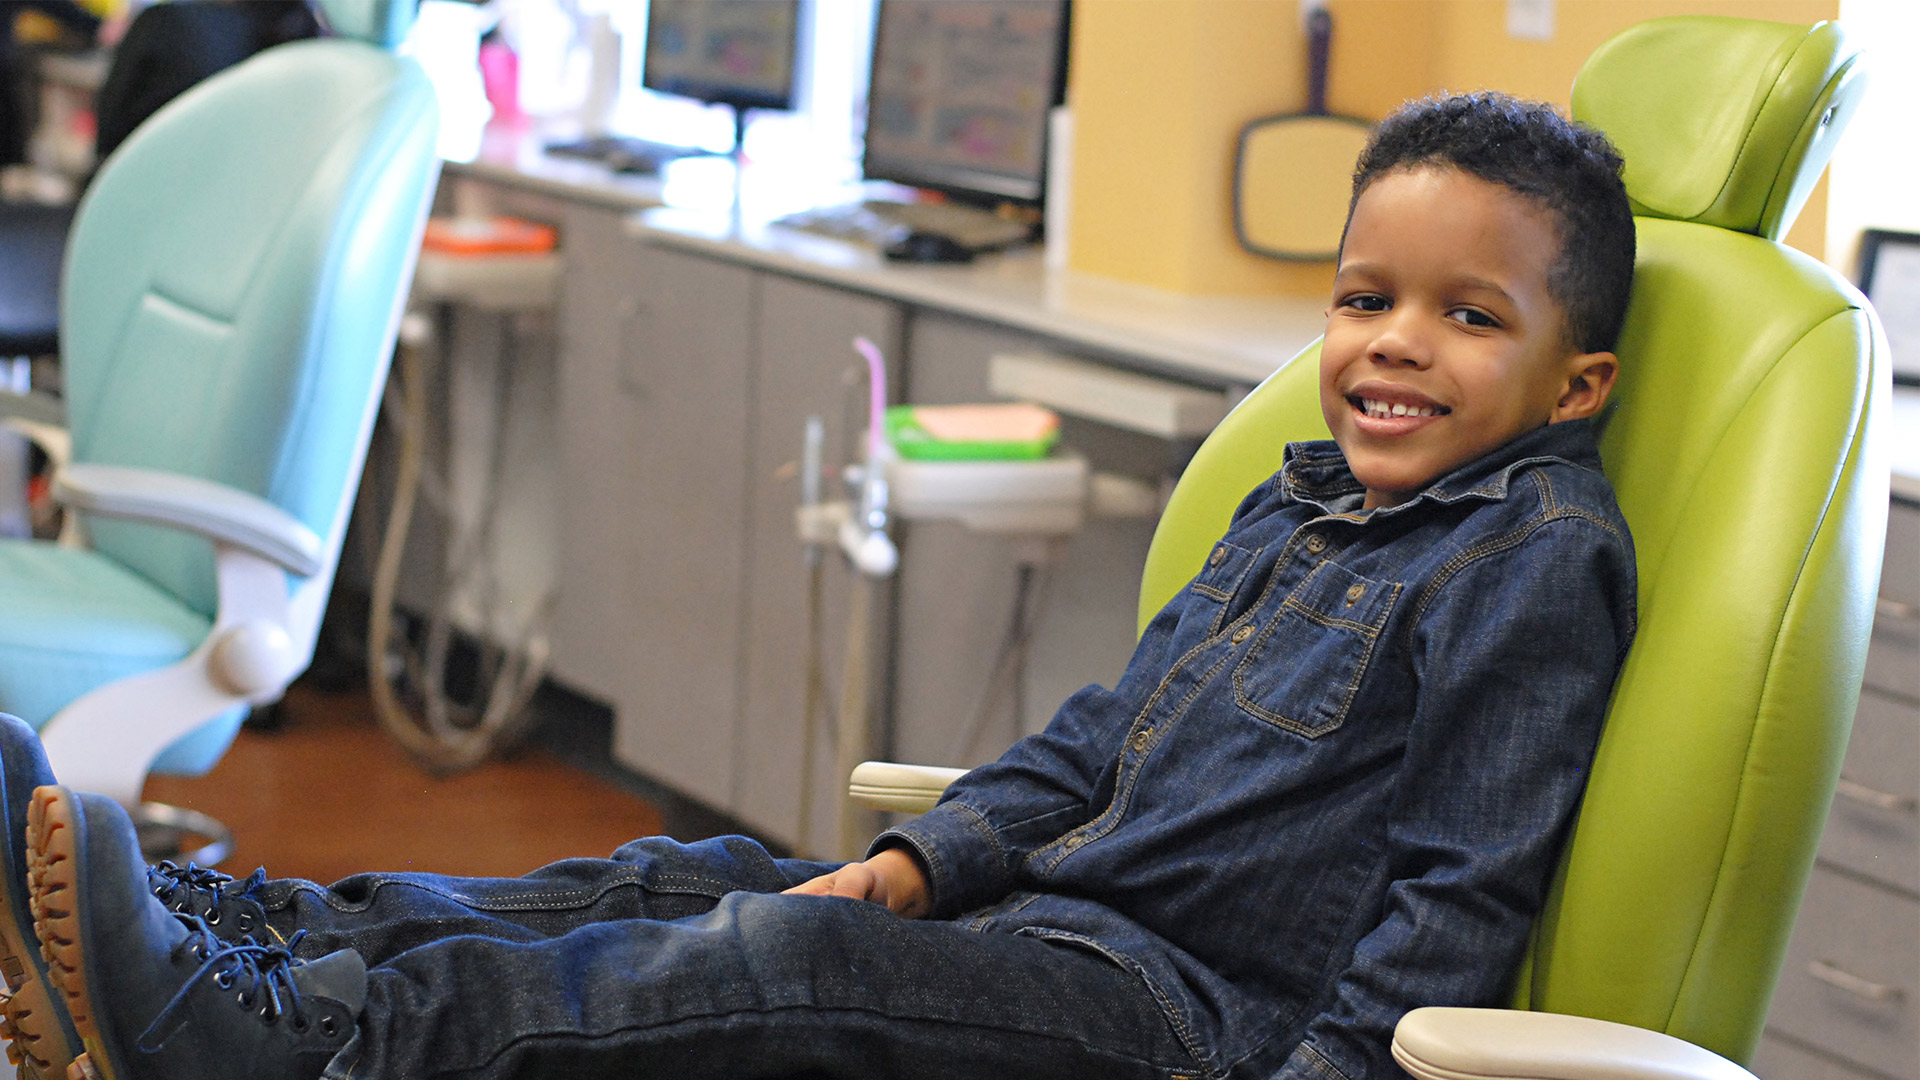 child smiling in chair